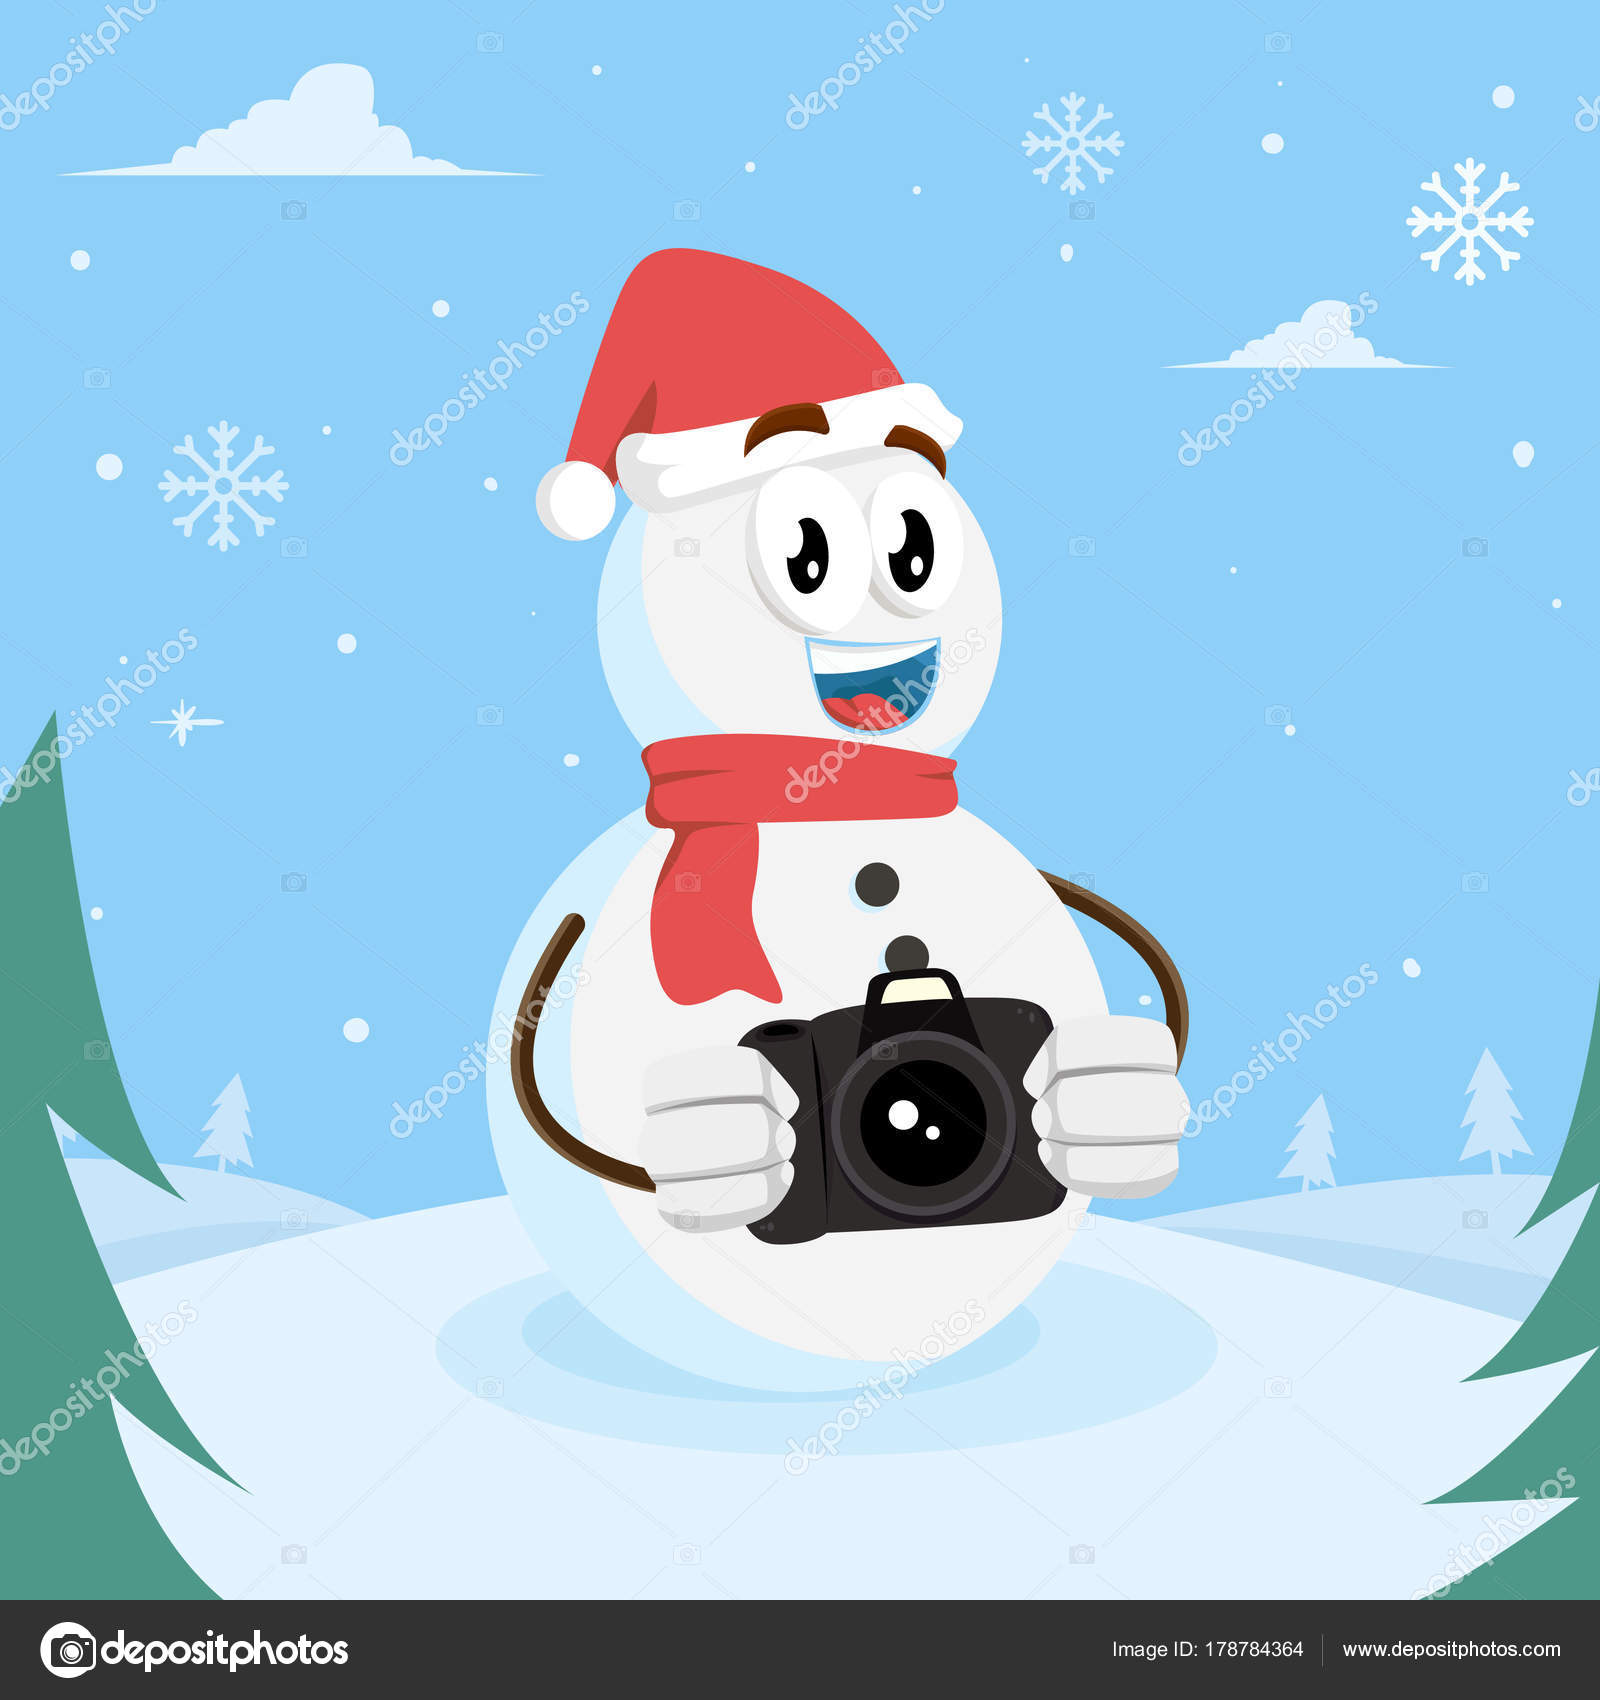 Snowman Logo Mascot Background Camera Pose Flat Design Style Your ...